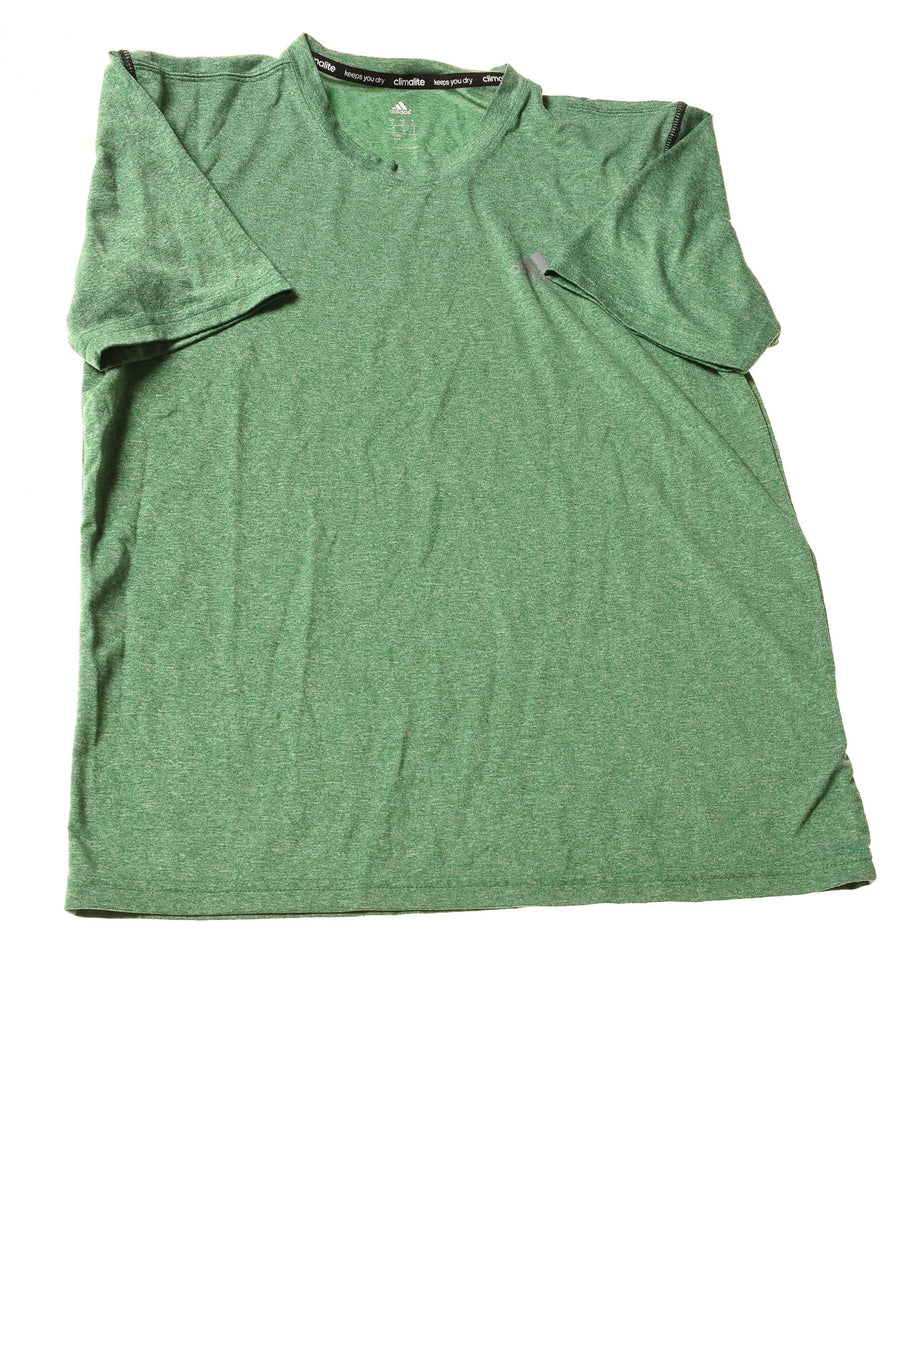 USED Adidas Men's Shirt Small Green